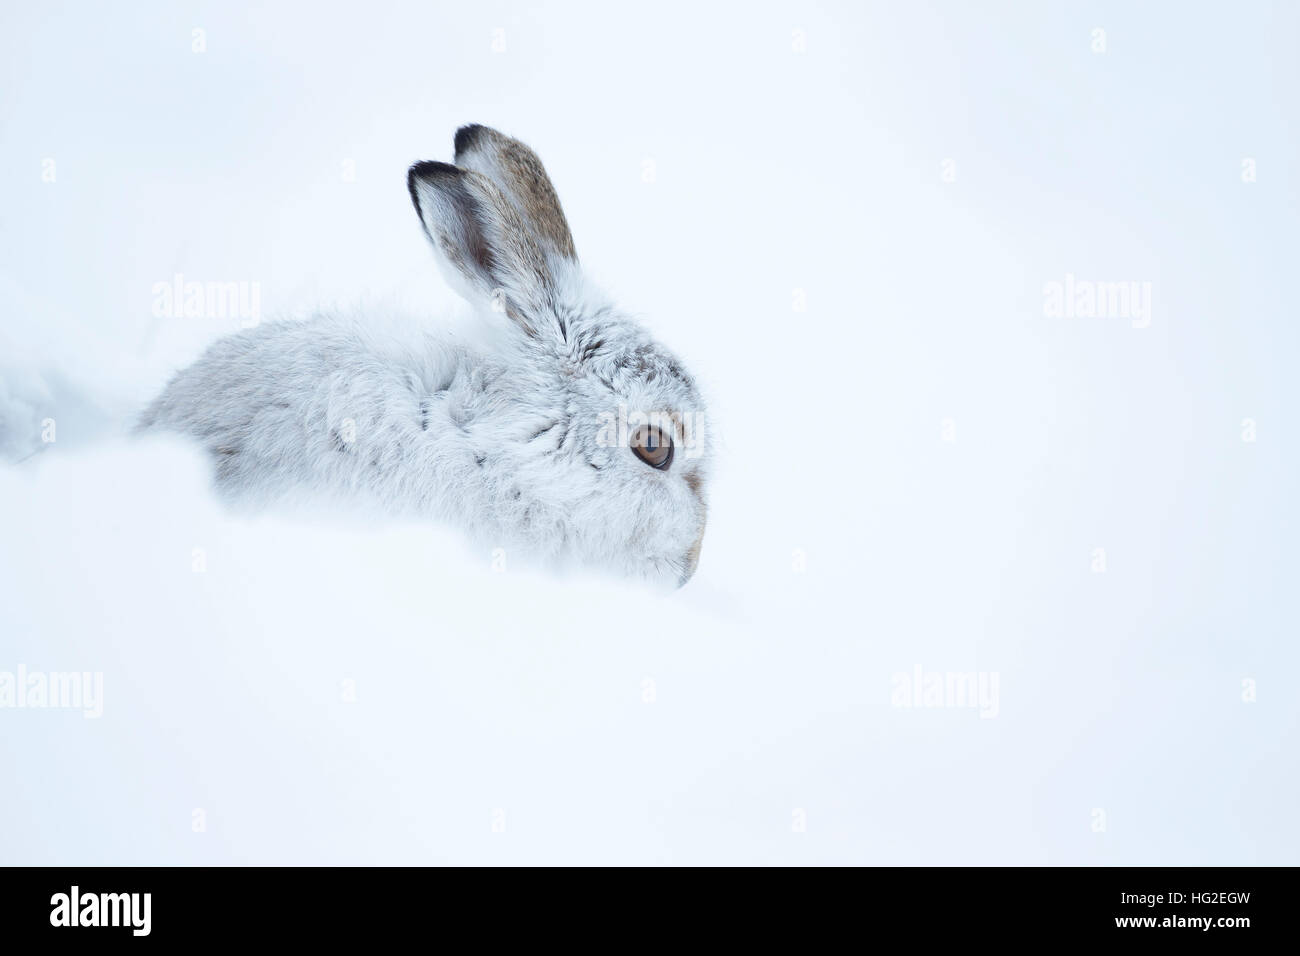 Mountain hare (Lepus timidus) resting in its form in the snow - Stock Image